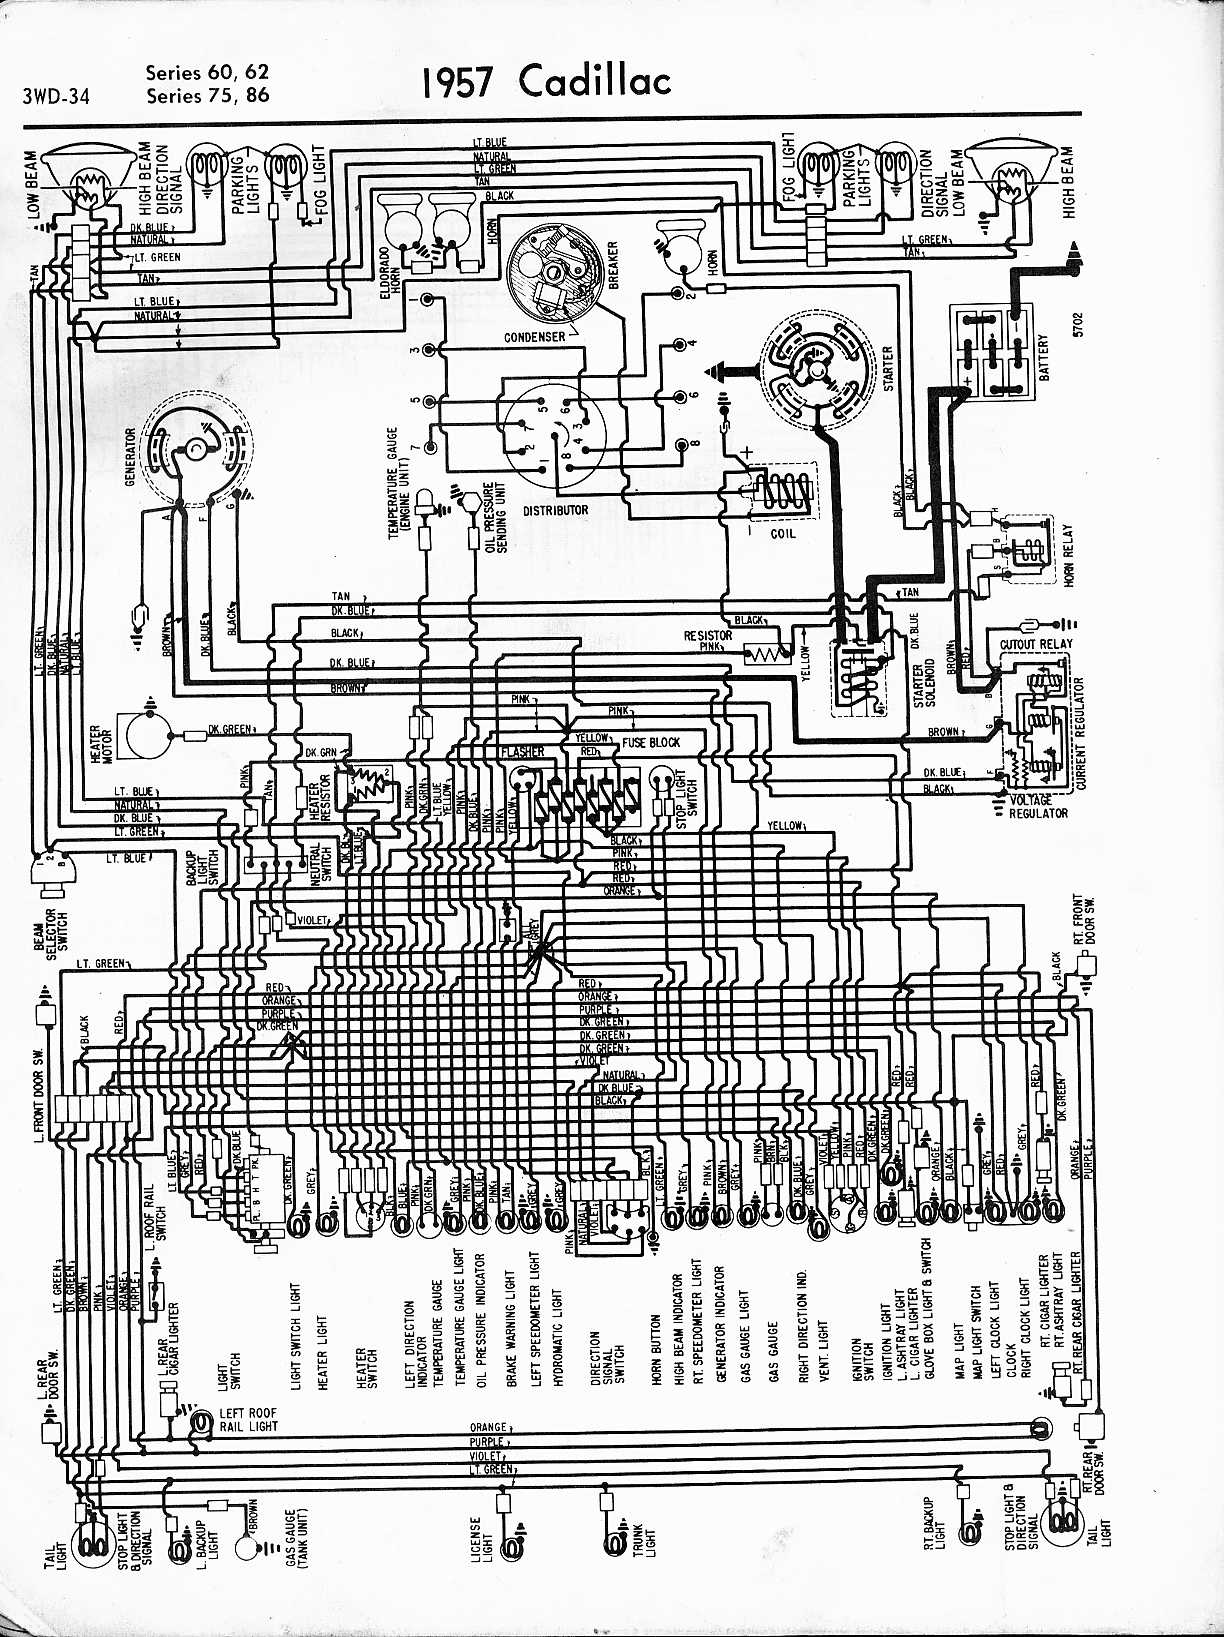 hight resolution of 1956 cadillac wiring diagram simple wiring diagram 2005 cadillac deville wiring diagram 68 cadillac distributor